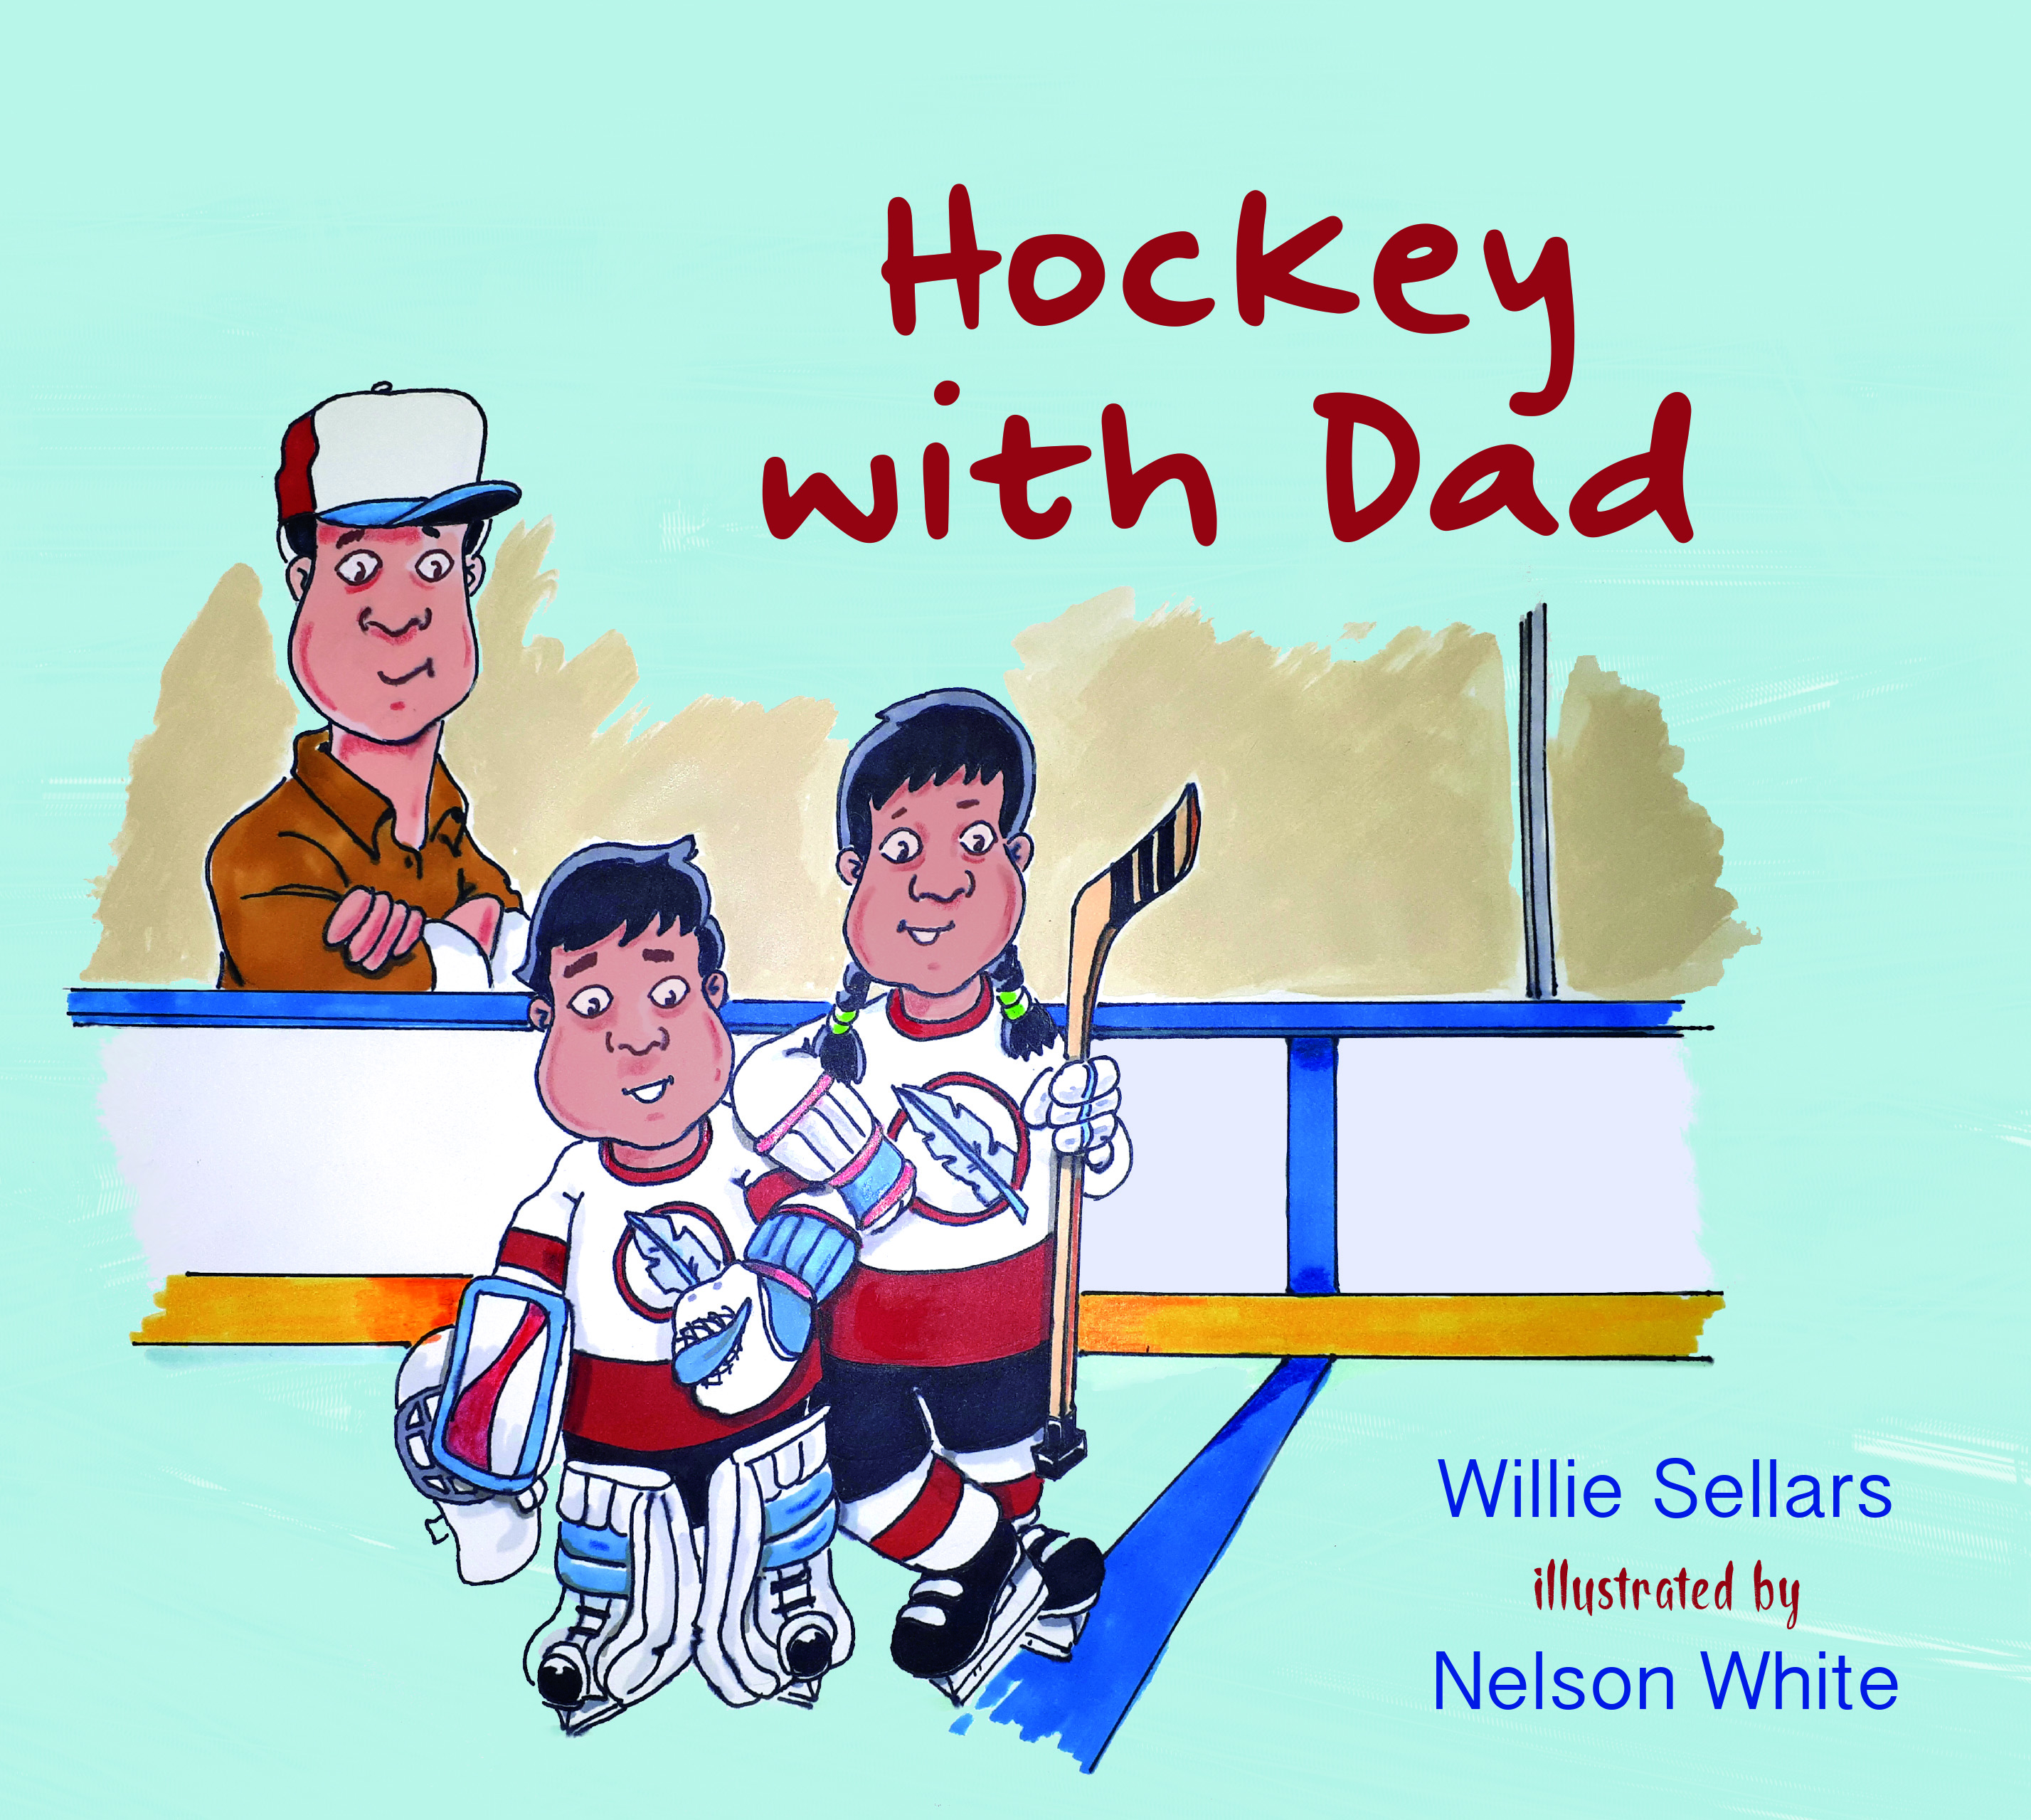 Hockey with Dad